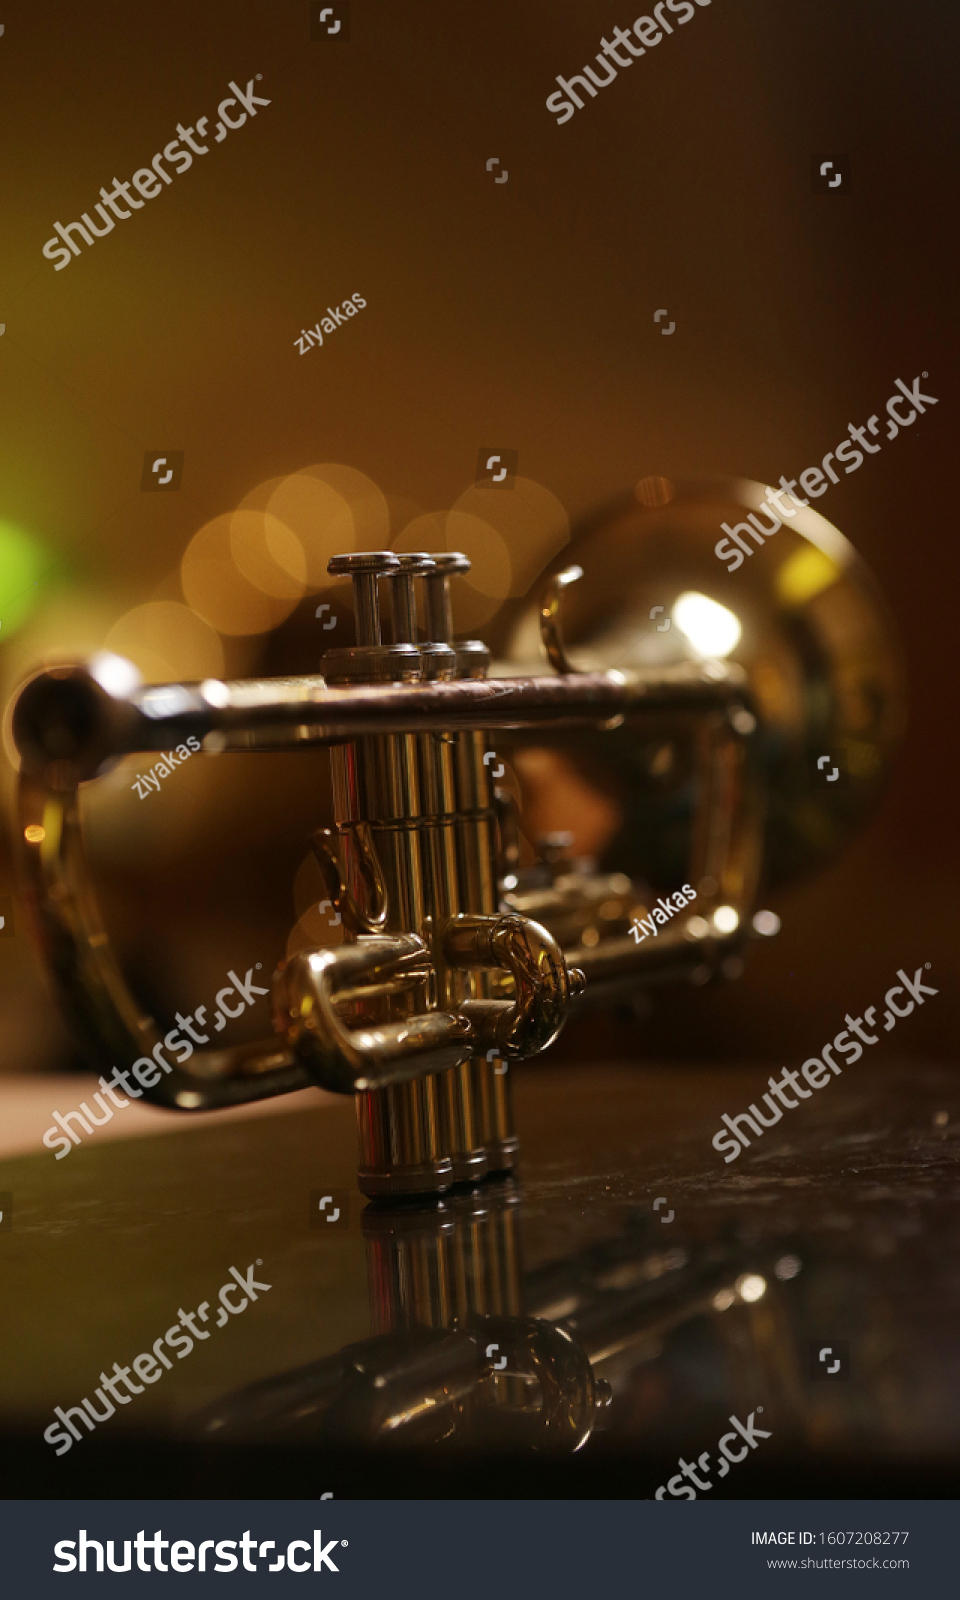 close-up gold color trumpet. Shallow depth of field. Bokeh in the background. brass instrument. breathing instrument #1607208277